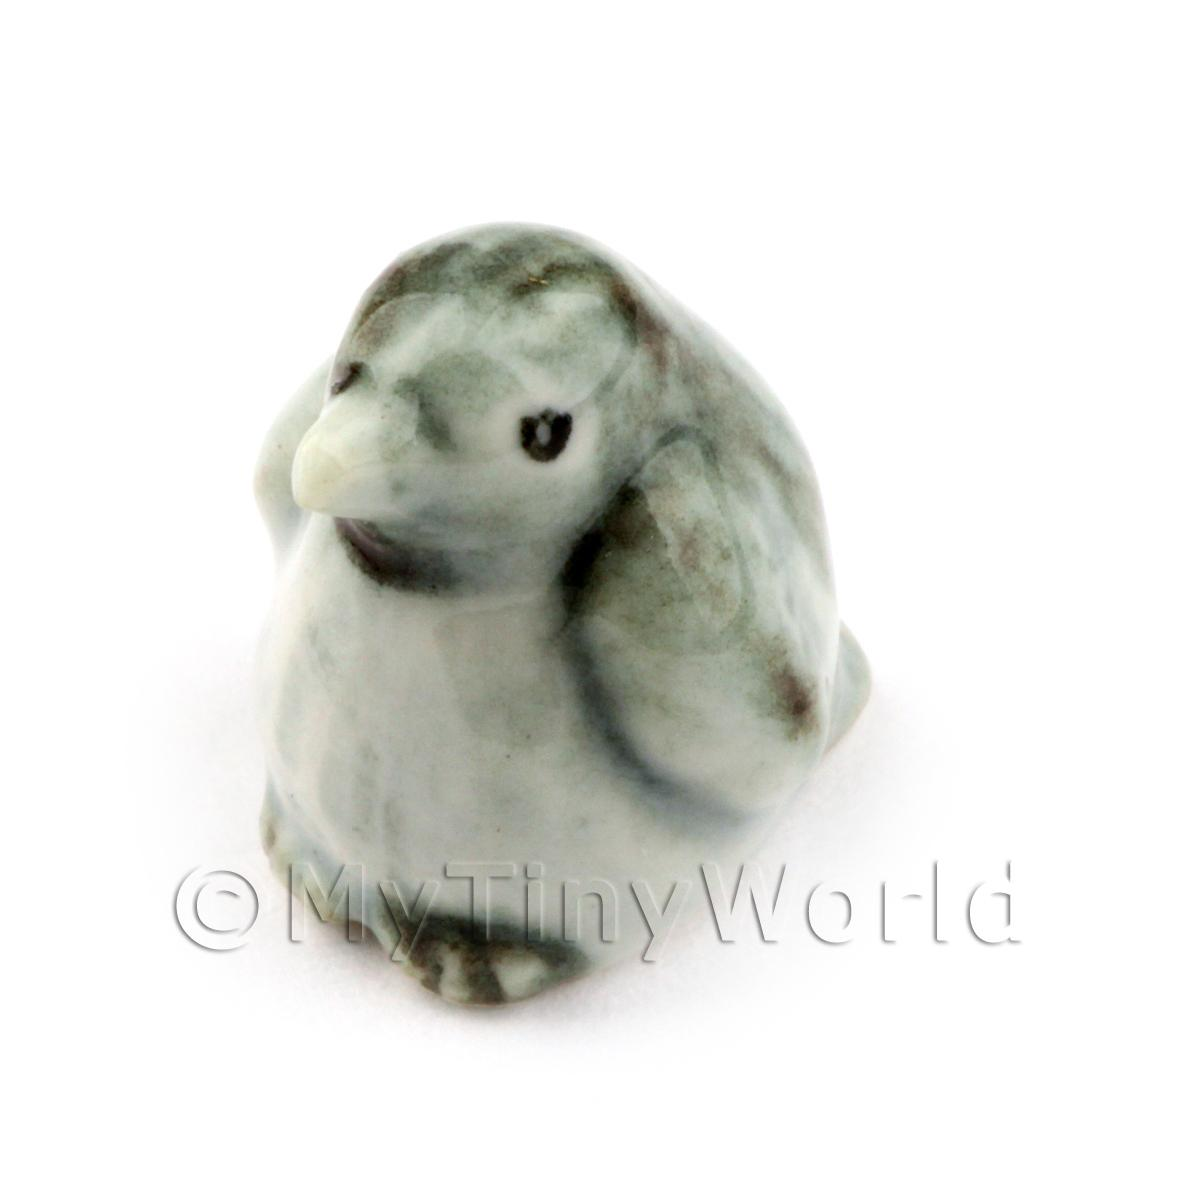 Dolls House Miniature Ceramic Baby Emperor Penguin